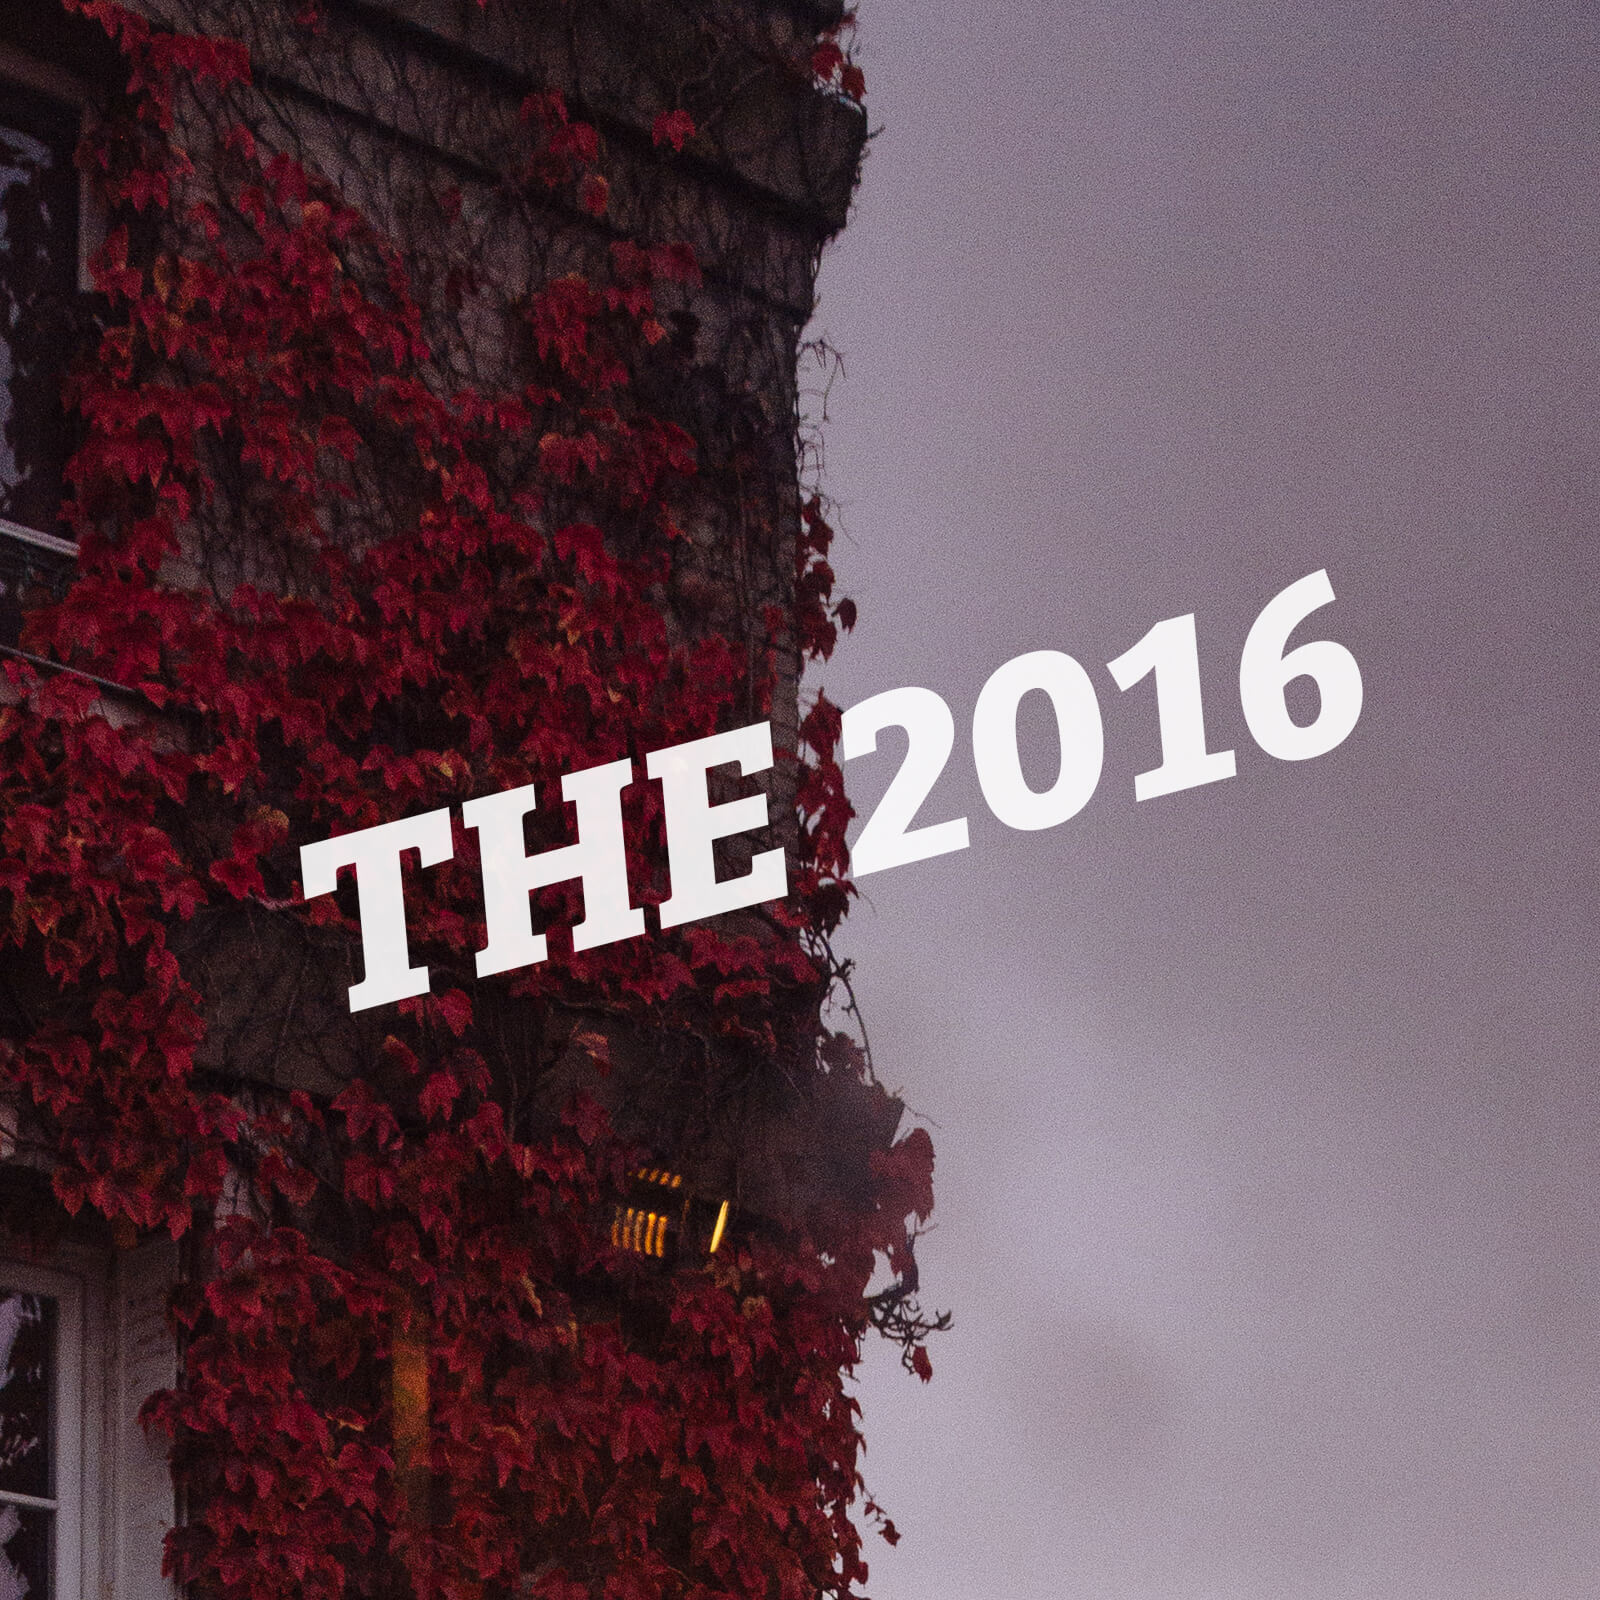 The 2016